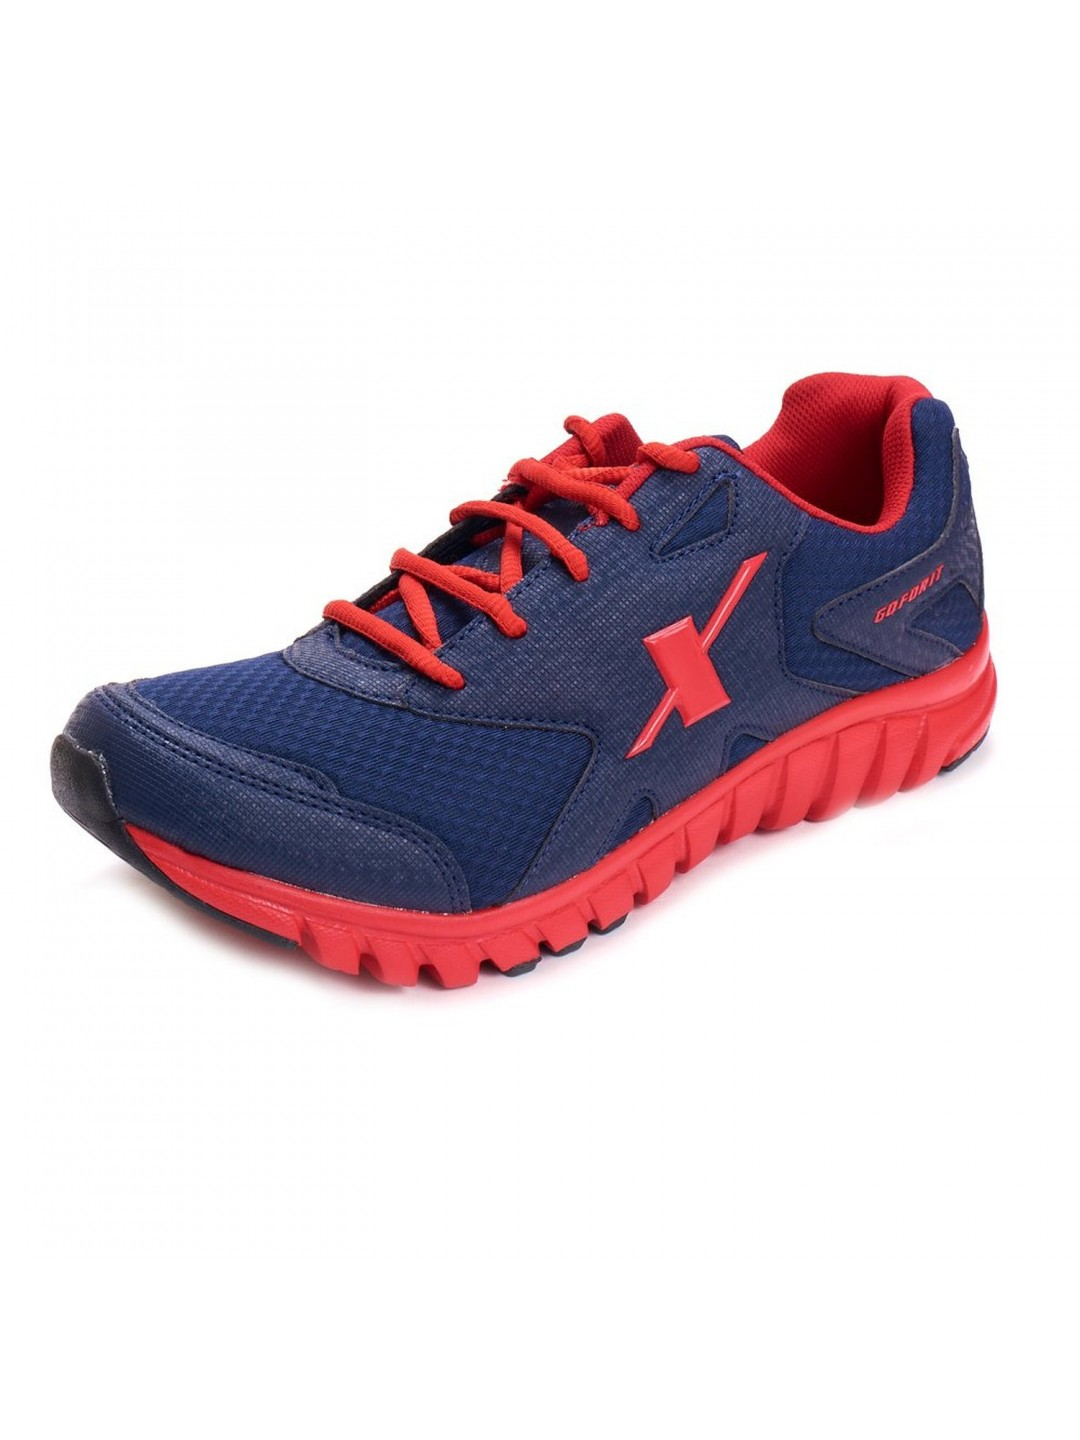 Sparx Men Sports Shoes In Blue Amp Red Color Sm185 Bl Rd